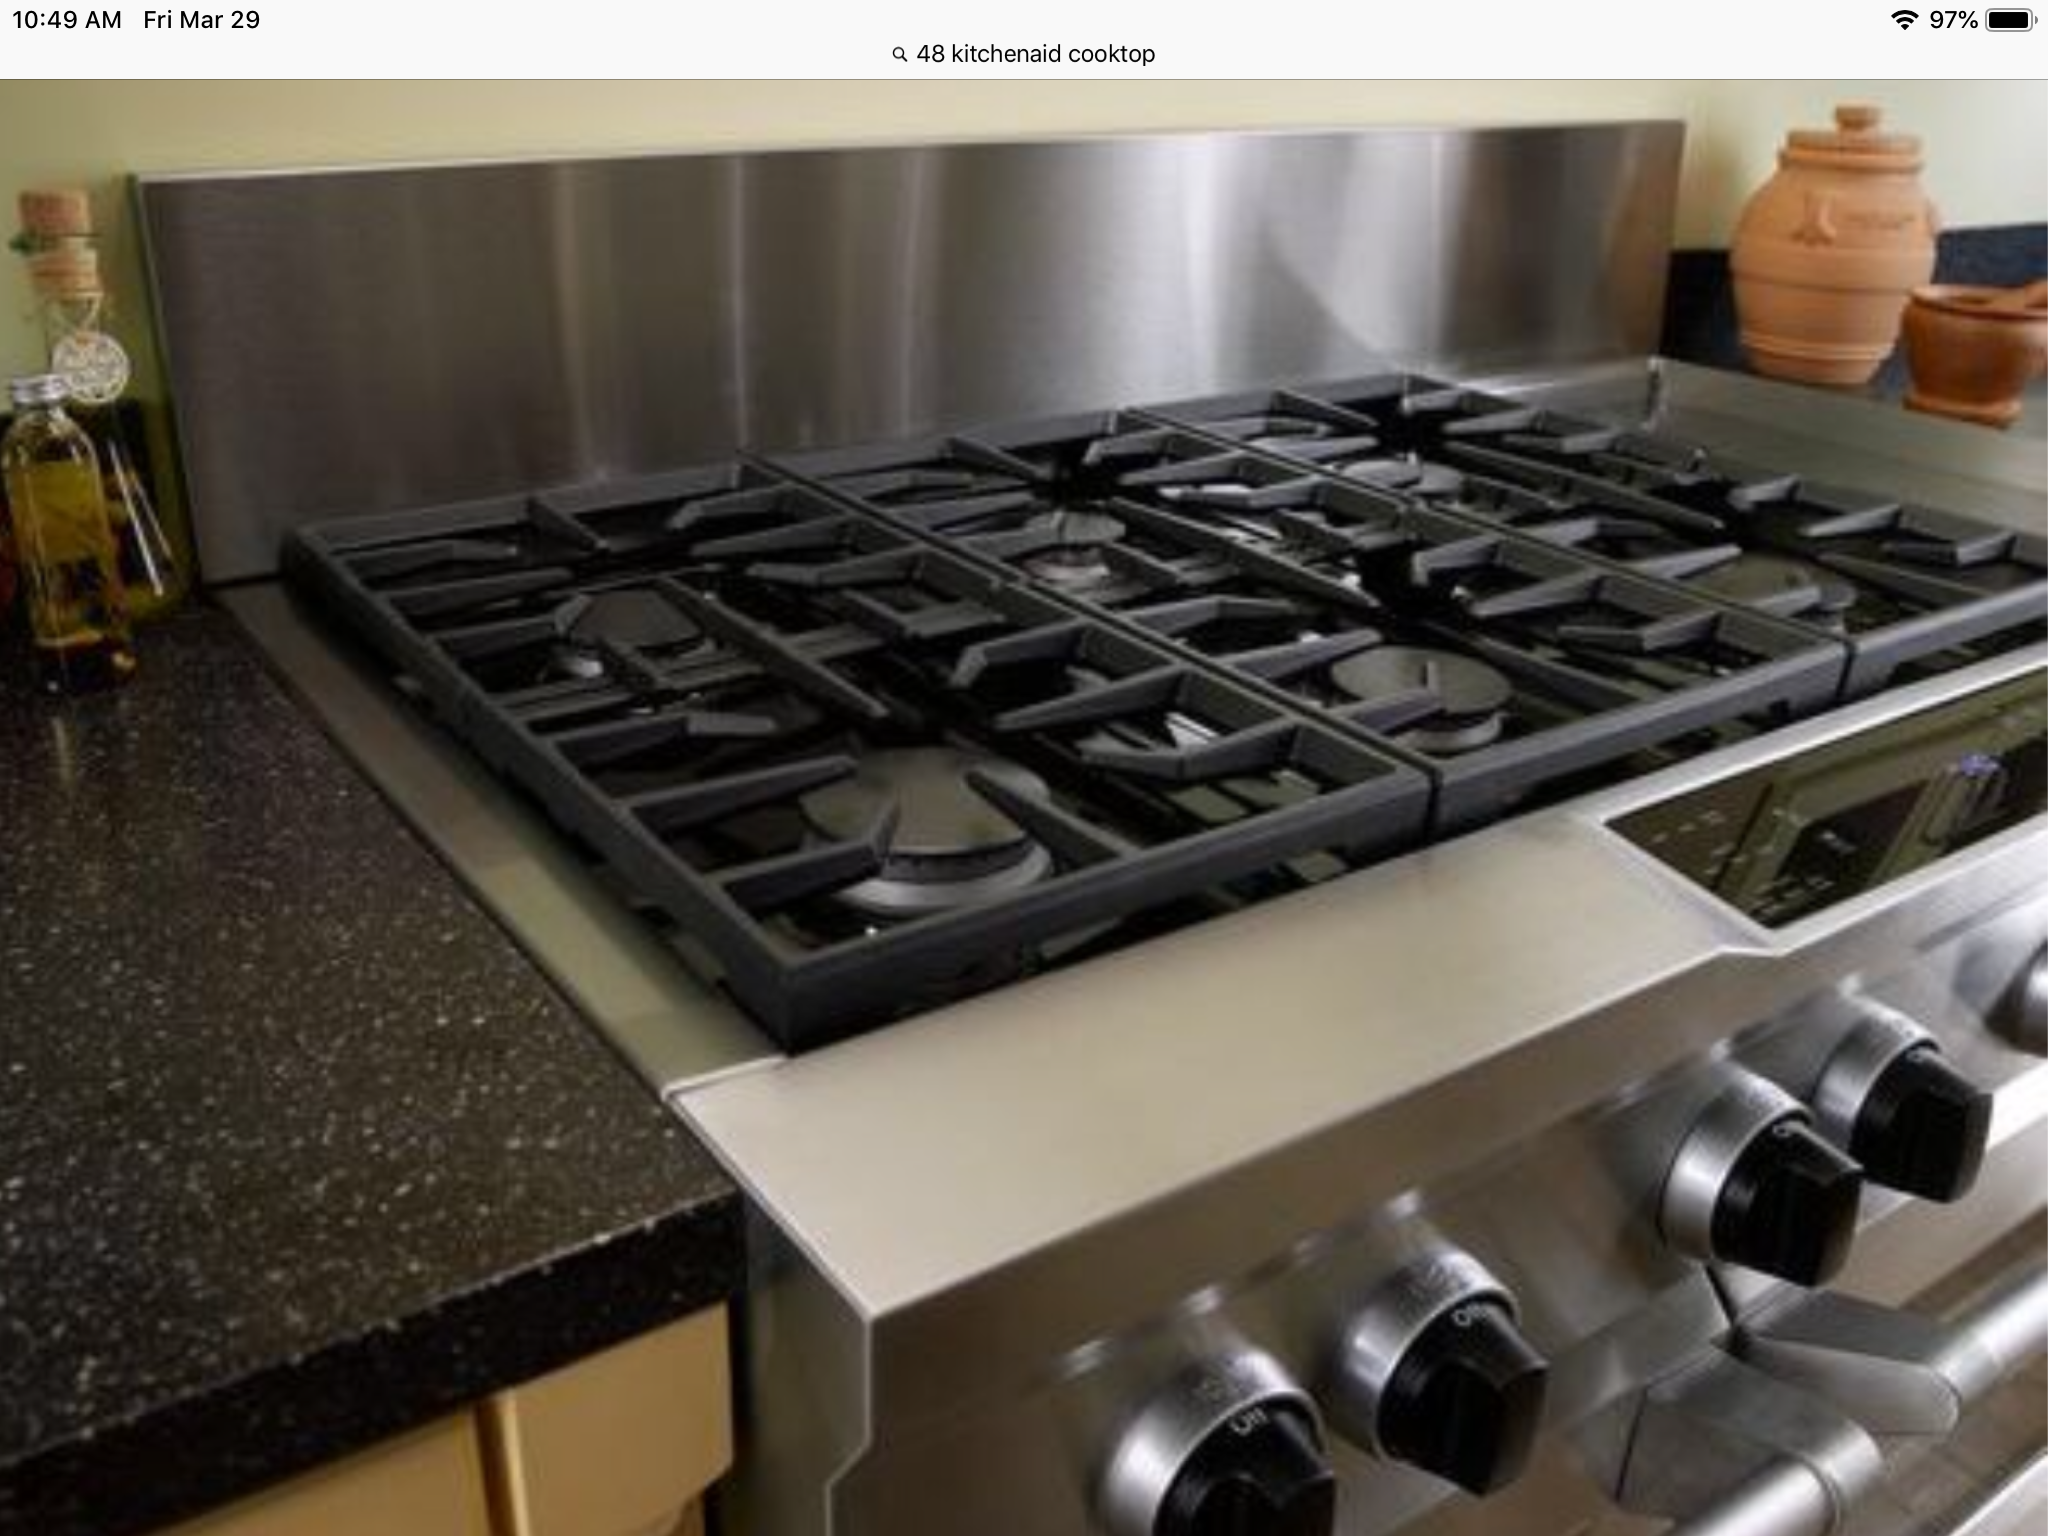 How to Handle This Gap Behind Cooktop?-6a3bb366-3aad-4cc9-99f5-c90d30f6d4e4.png